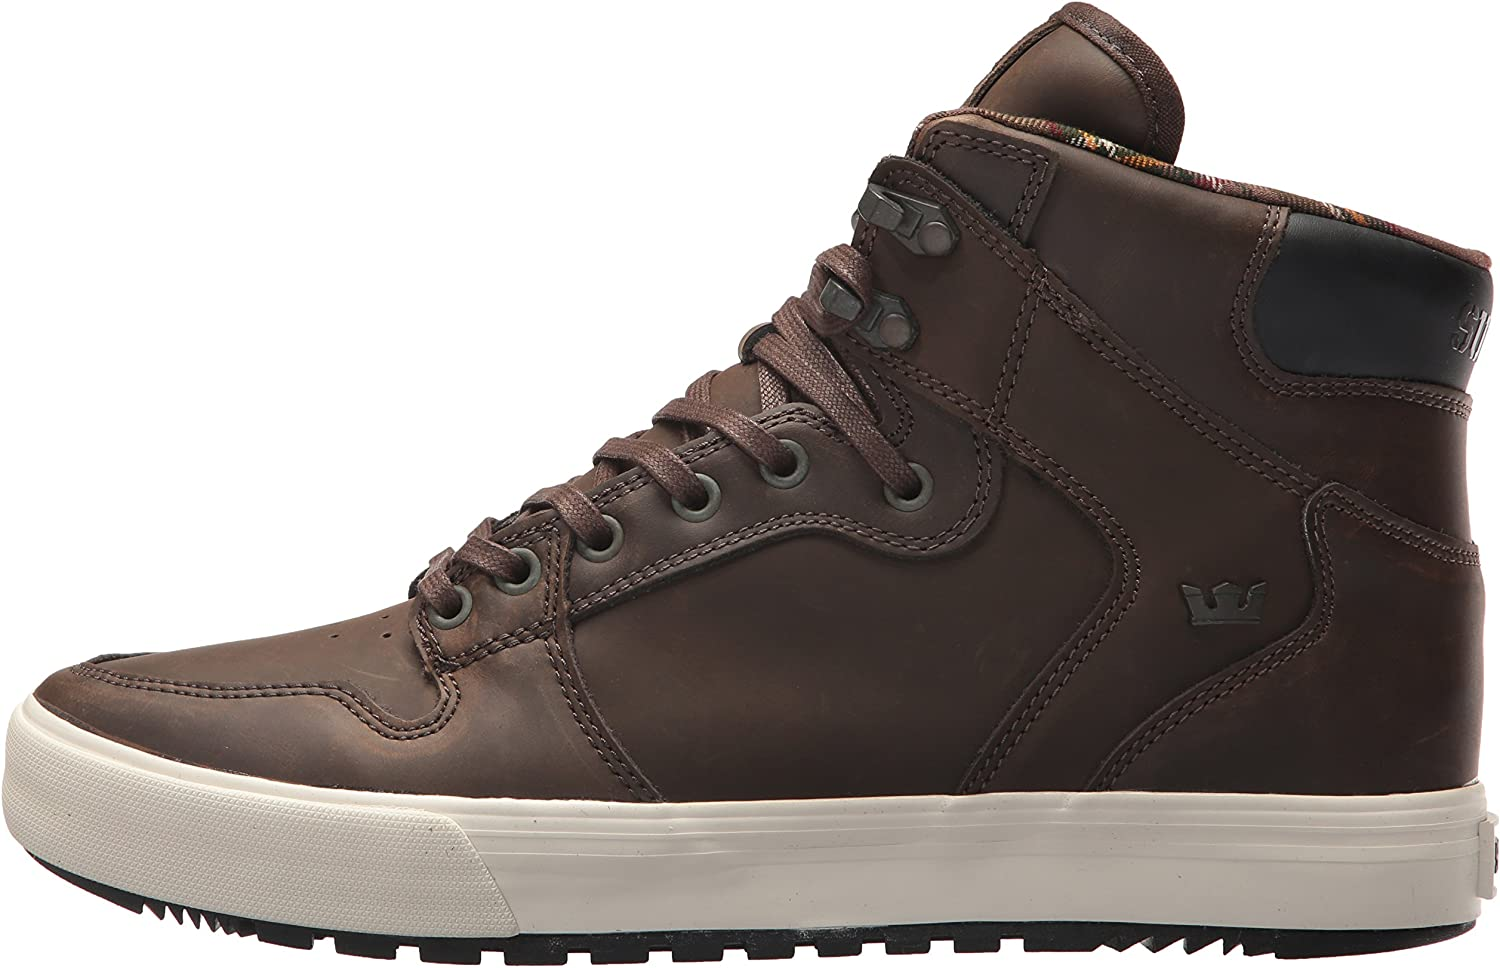 Vaider Cold Weather High Top Skate Shoes